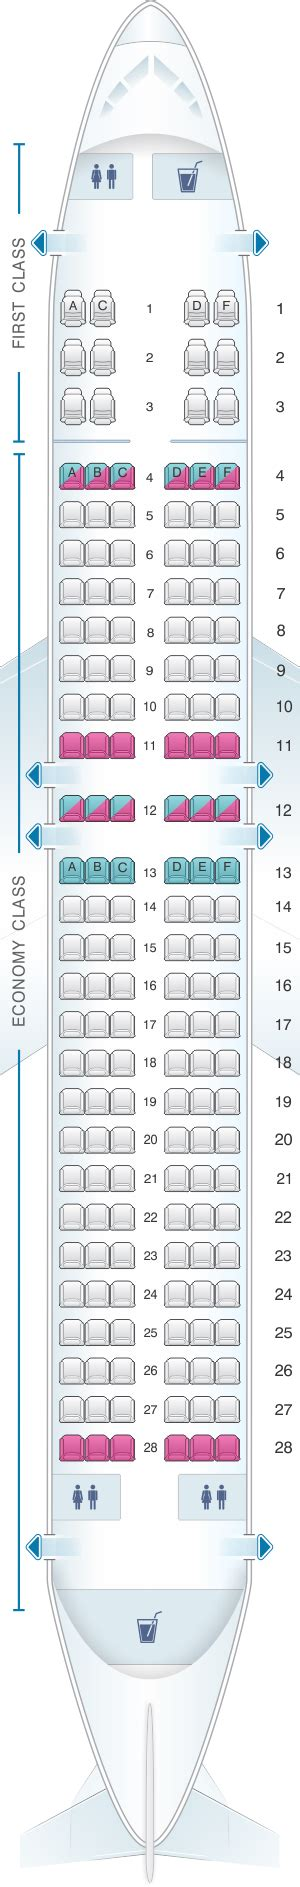 sun seating chart seat map sun country airlines boeing b737 800 162pax